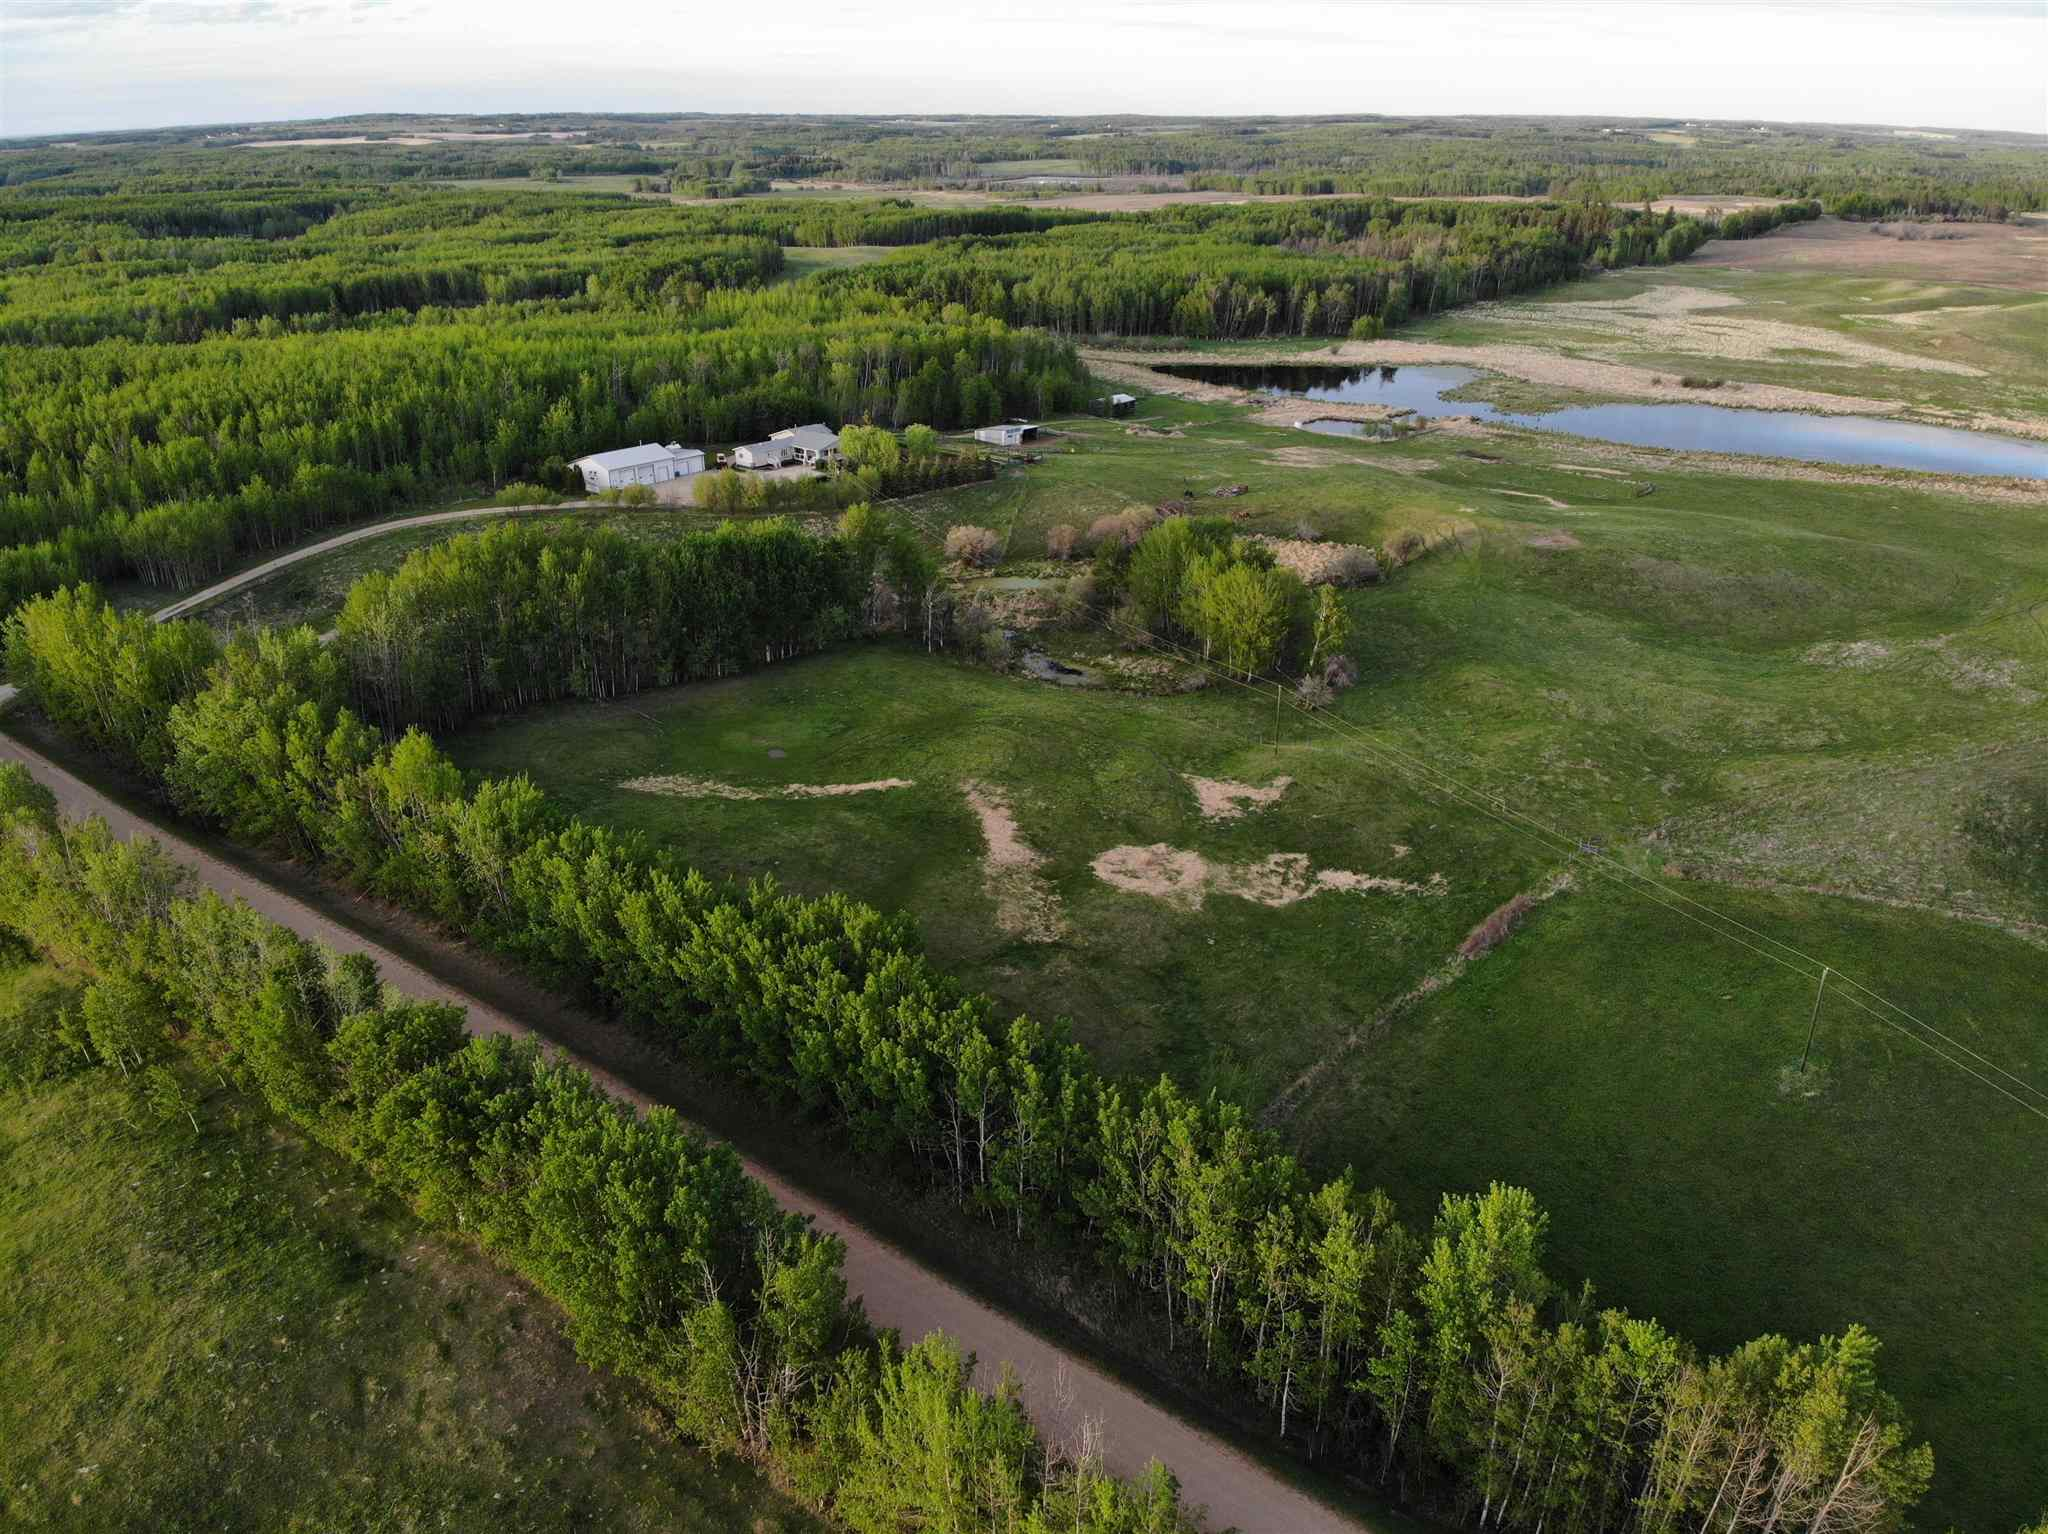 Remarkably Special 79 acre property rich with Features, Gorgeous landscape, Spotless 2120 sq ft Home, Modern 34'x50' high wall Shop w/ oversized attached 28'x32' Double Garage at side for convenient parking & much more. Incredibly cared for Home features 3 nice size bedrooms plus optional large hobby room or 4th bedroom. 2 full bath. Excellent country entrance & convenient central laundry. Sprawling family room full of bright natural light & corner wood stove. Extensive bright white kitchen cabinetry complete with full set of stainless steel appliances, open attaching dining room & access to outside bbq deck.  Unbelievable south facing covered entertainment deck. Fresh exterior stucco plus many other high quality improvements. 14'x50' covered R.V. Storage. Multitudes of pipe steel corrals, 12'x30' Livestock Barn along with 18'x30' Cattle Shed. High & dry yard site. Winter skating area. Presence, productivity and unbridled continued potential wrapped into a country package ready and waiting you.